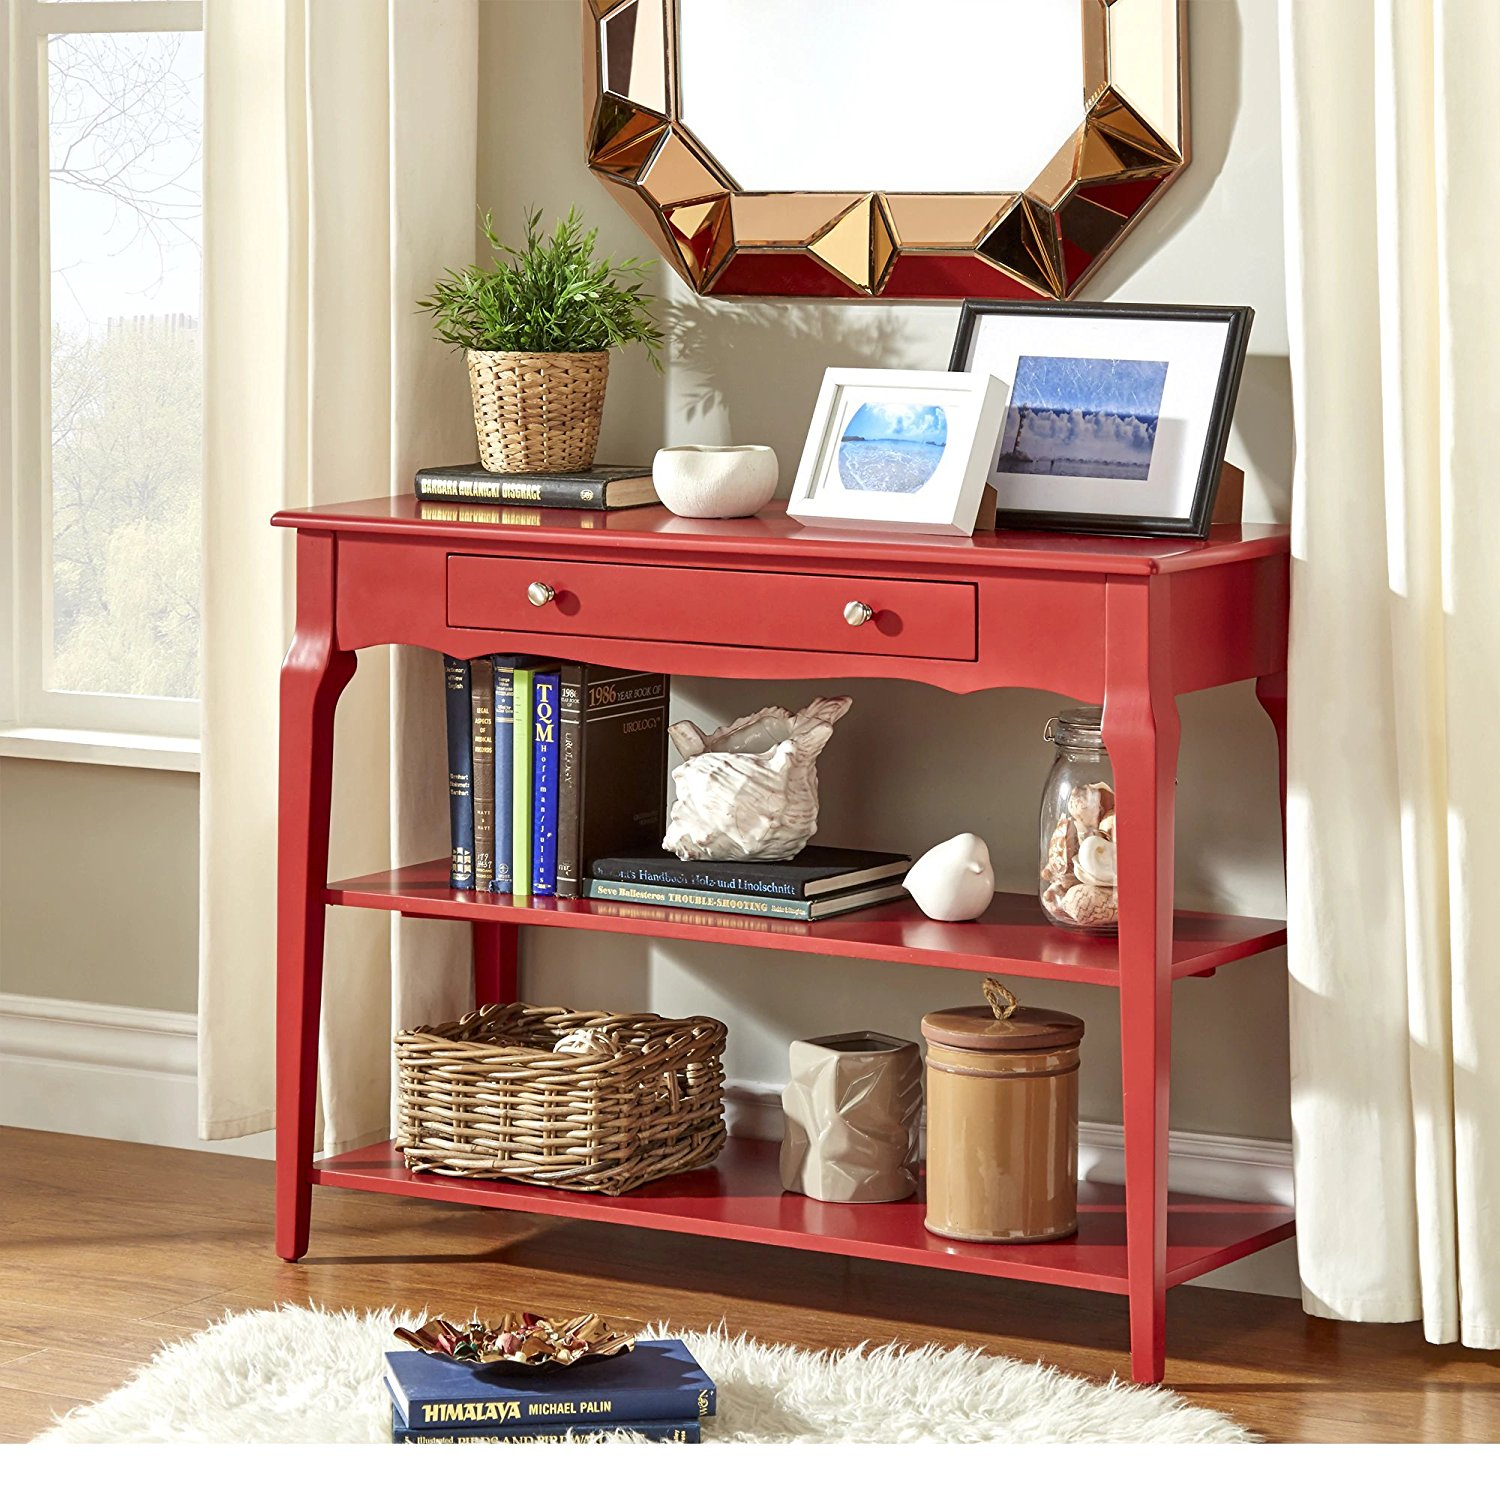 Modern Wood Accent Console Sofa Table with 1 Drawer and 2 Open Shelves - Includes Modhaus Living Pen (Red)